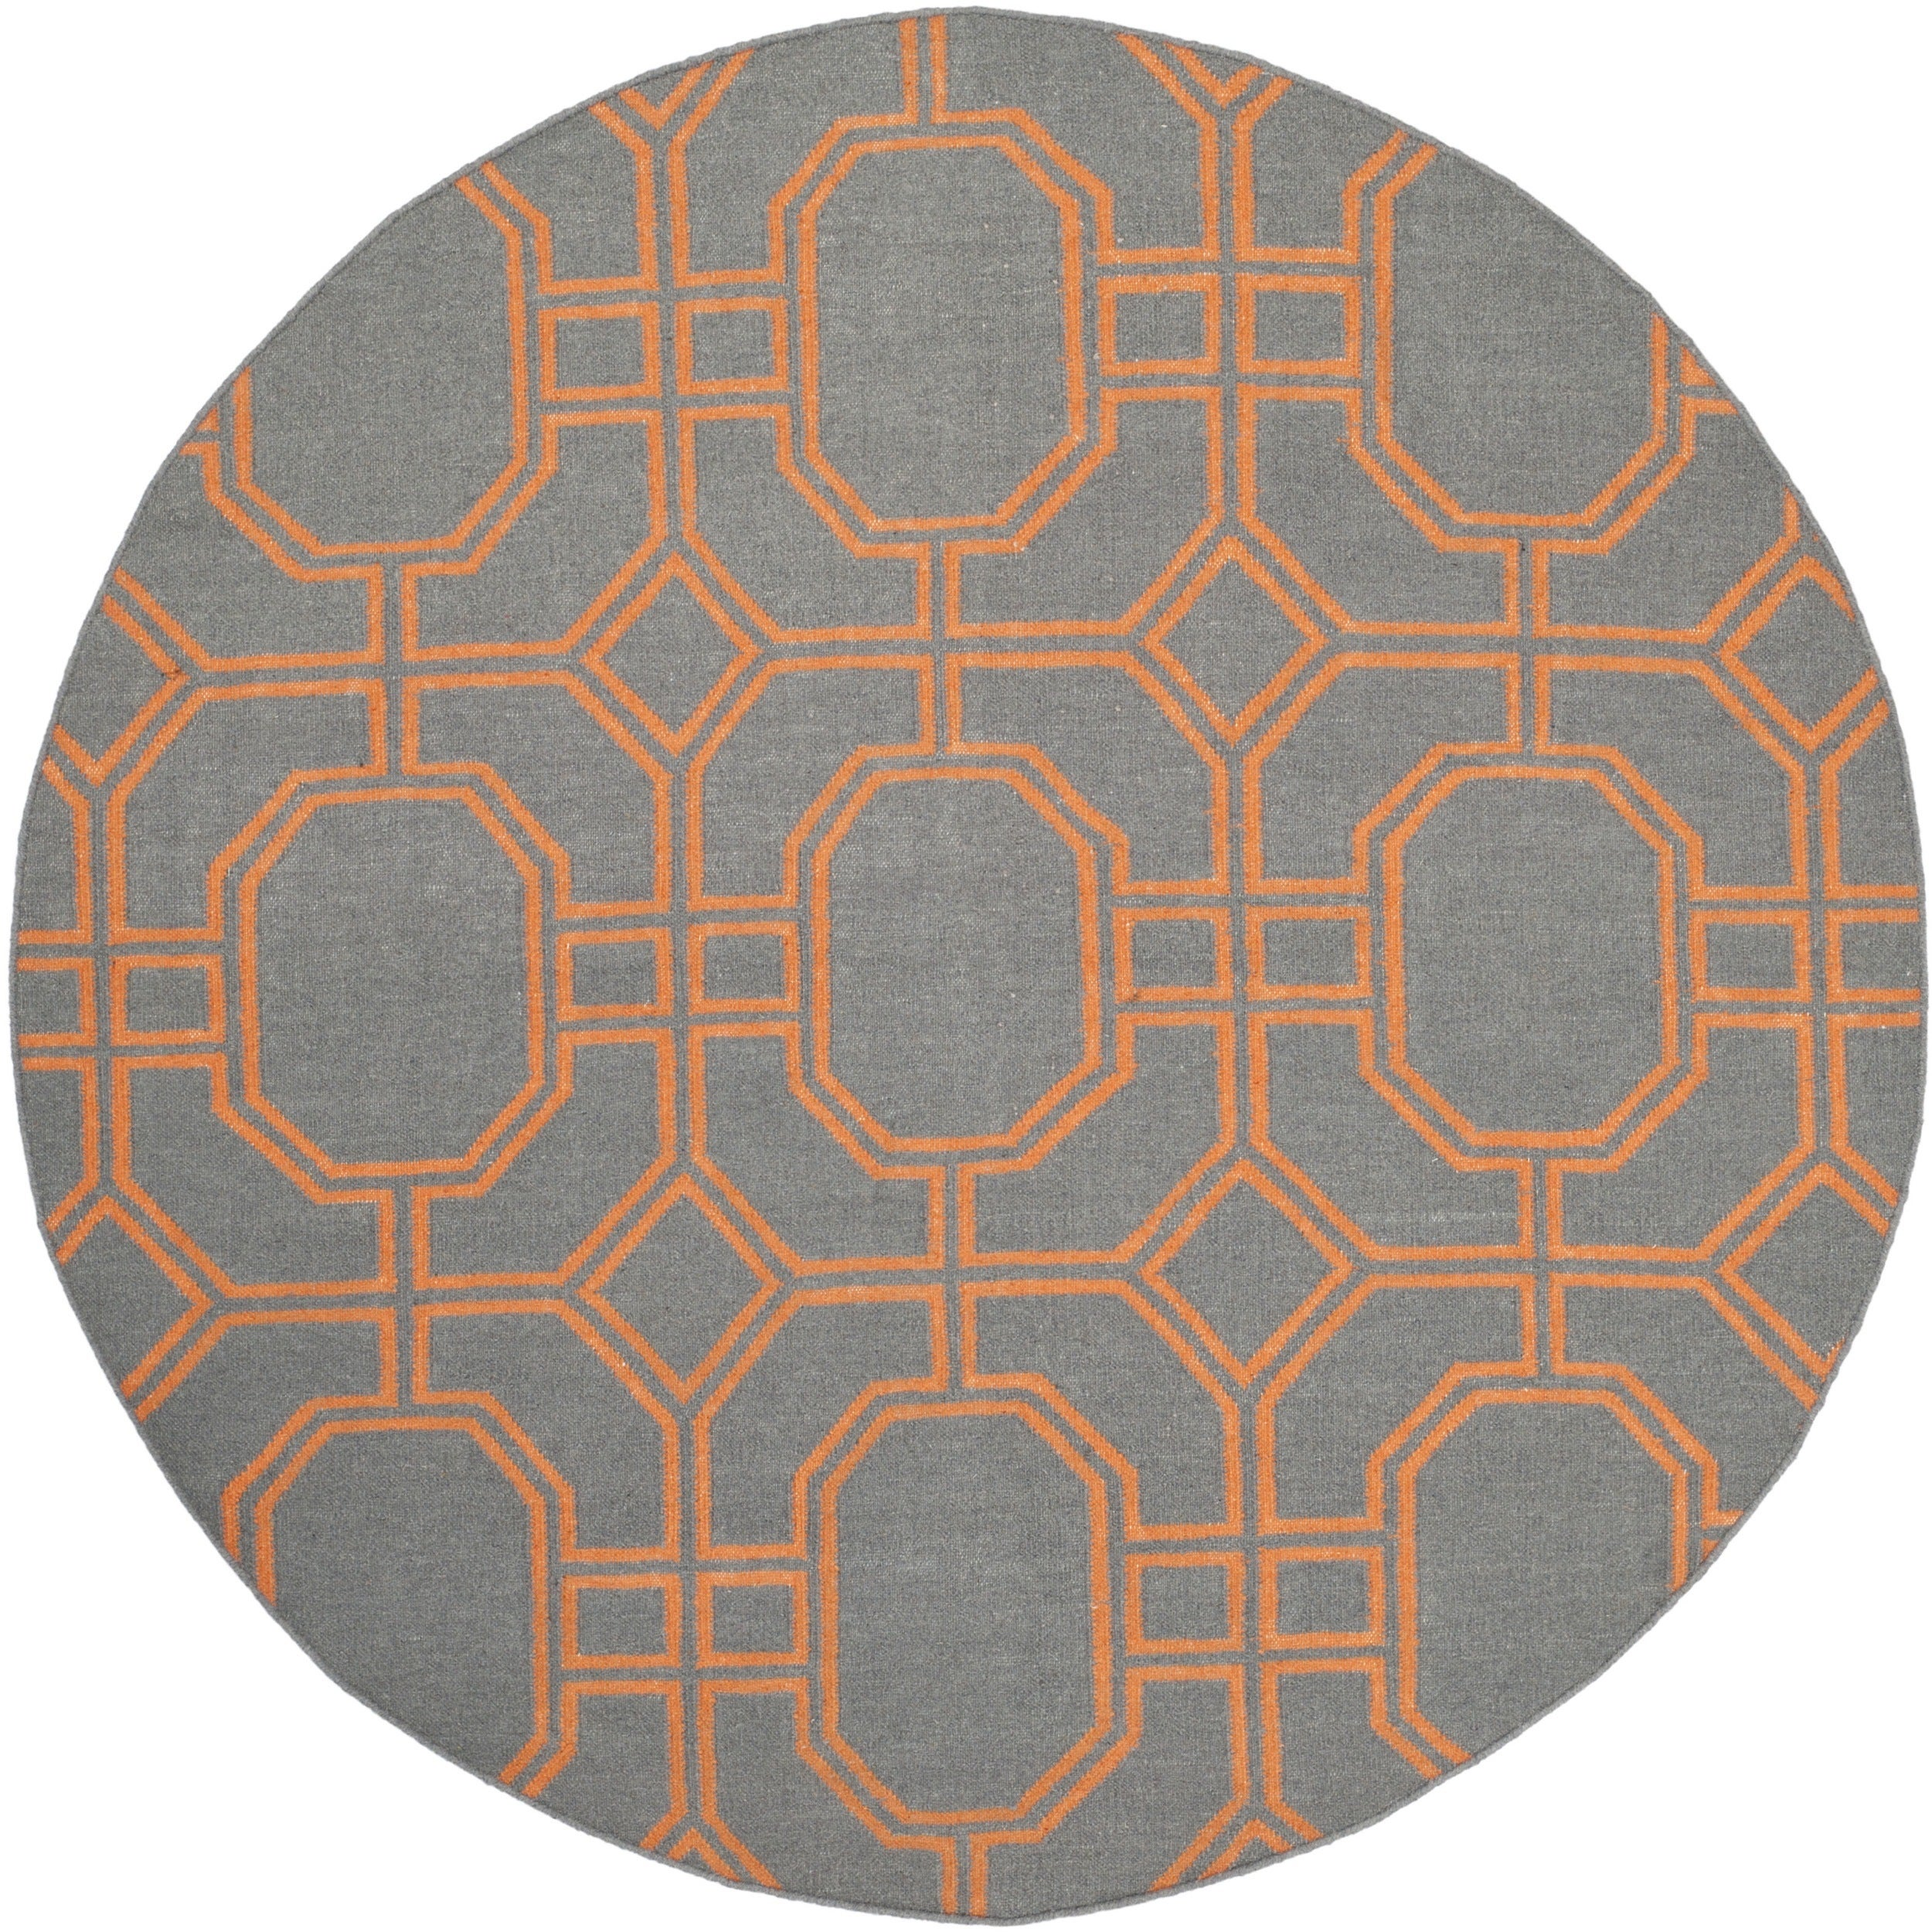 safavieh hand woven moroccan reversible dhurrie blue orange wool rug 6 39 round ebay. Black Bedroom Furniture Sets. Home Design Ideas